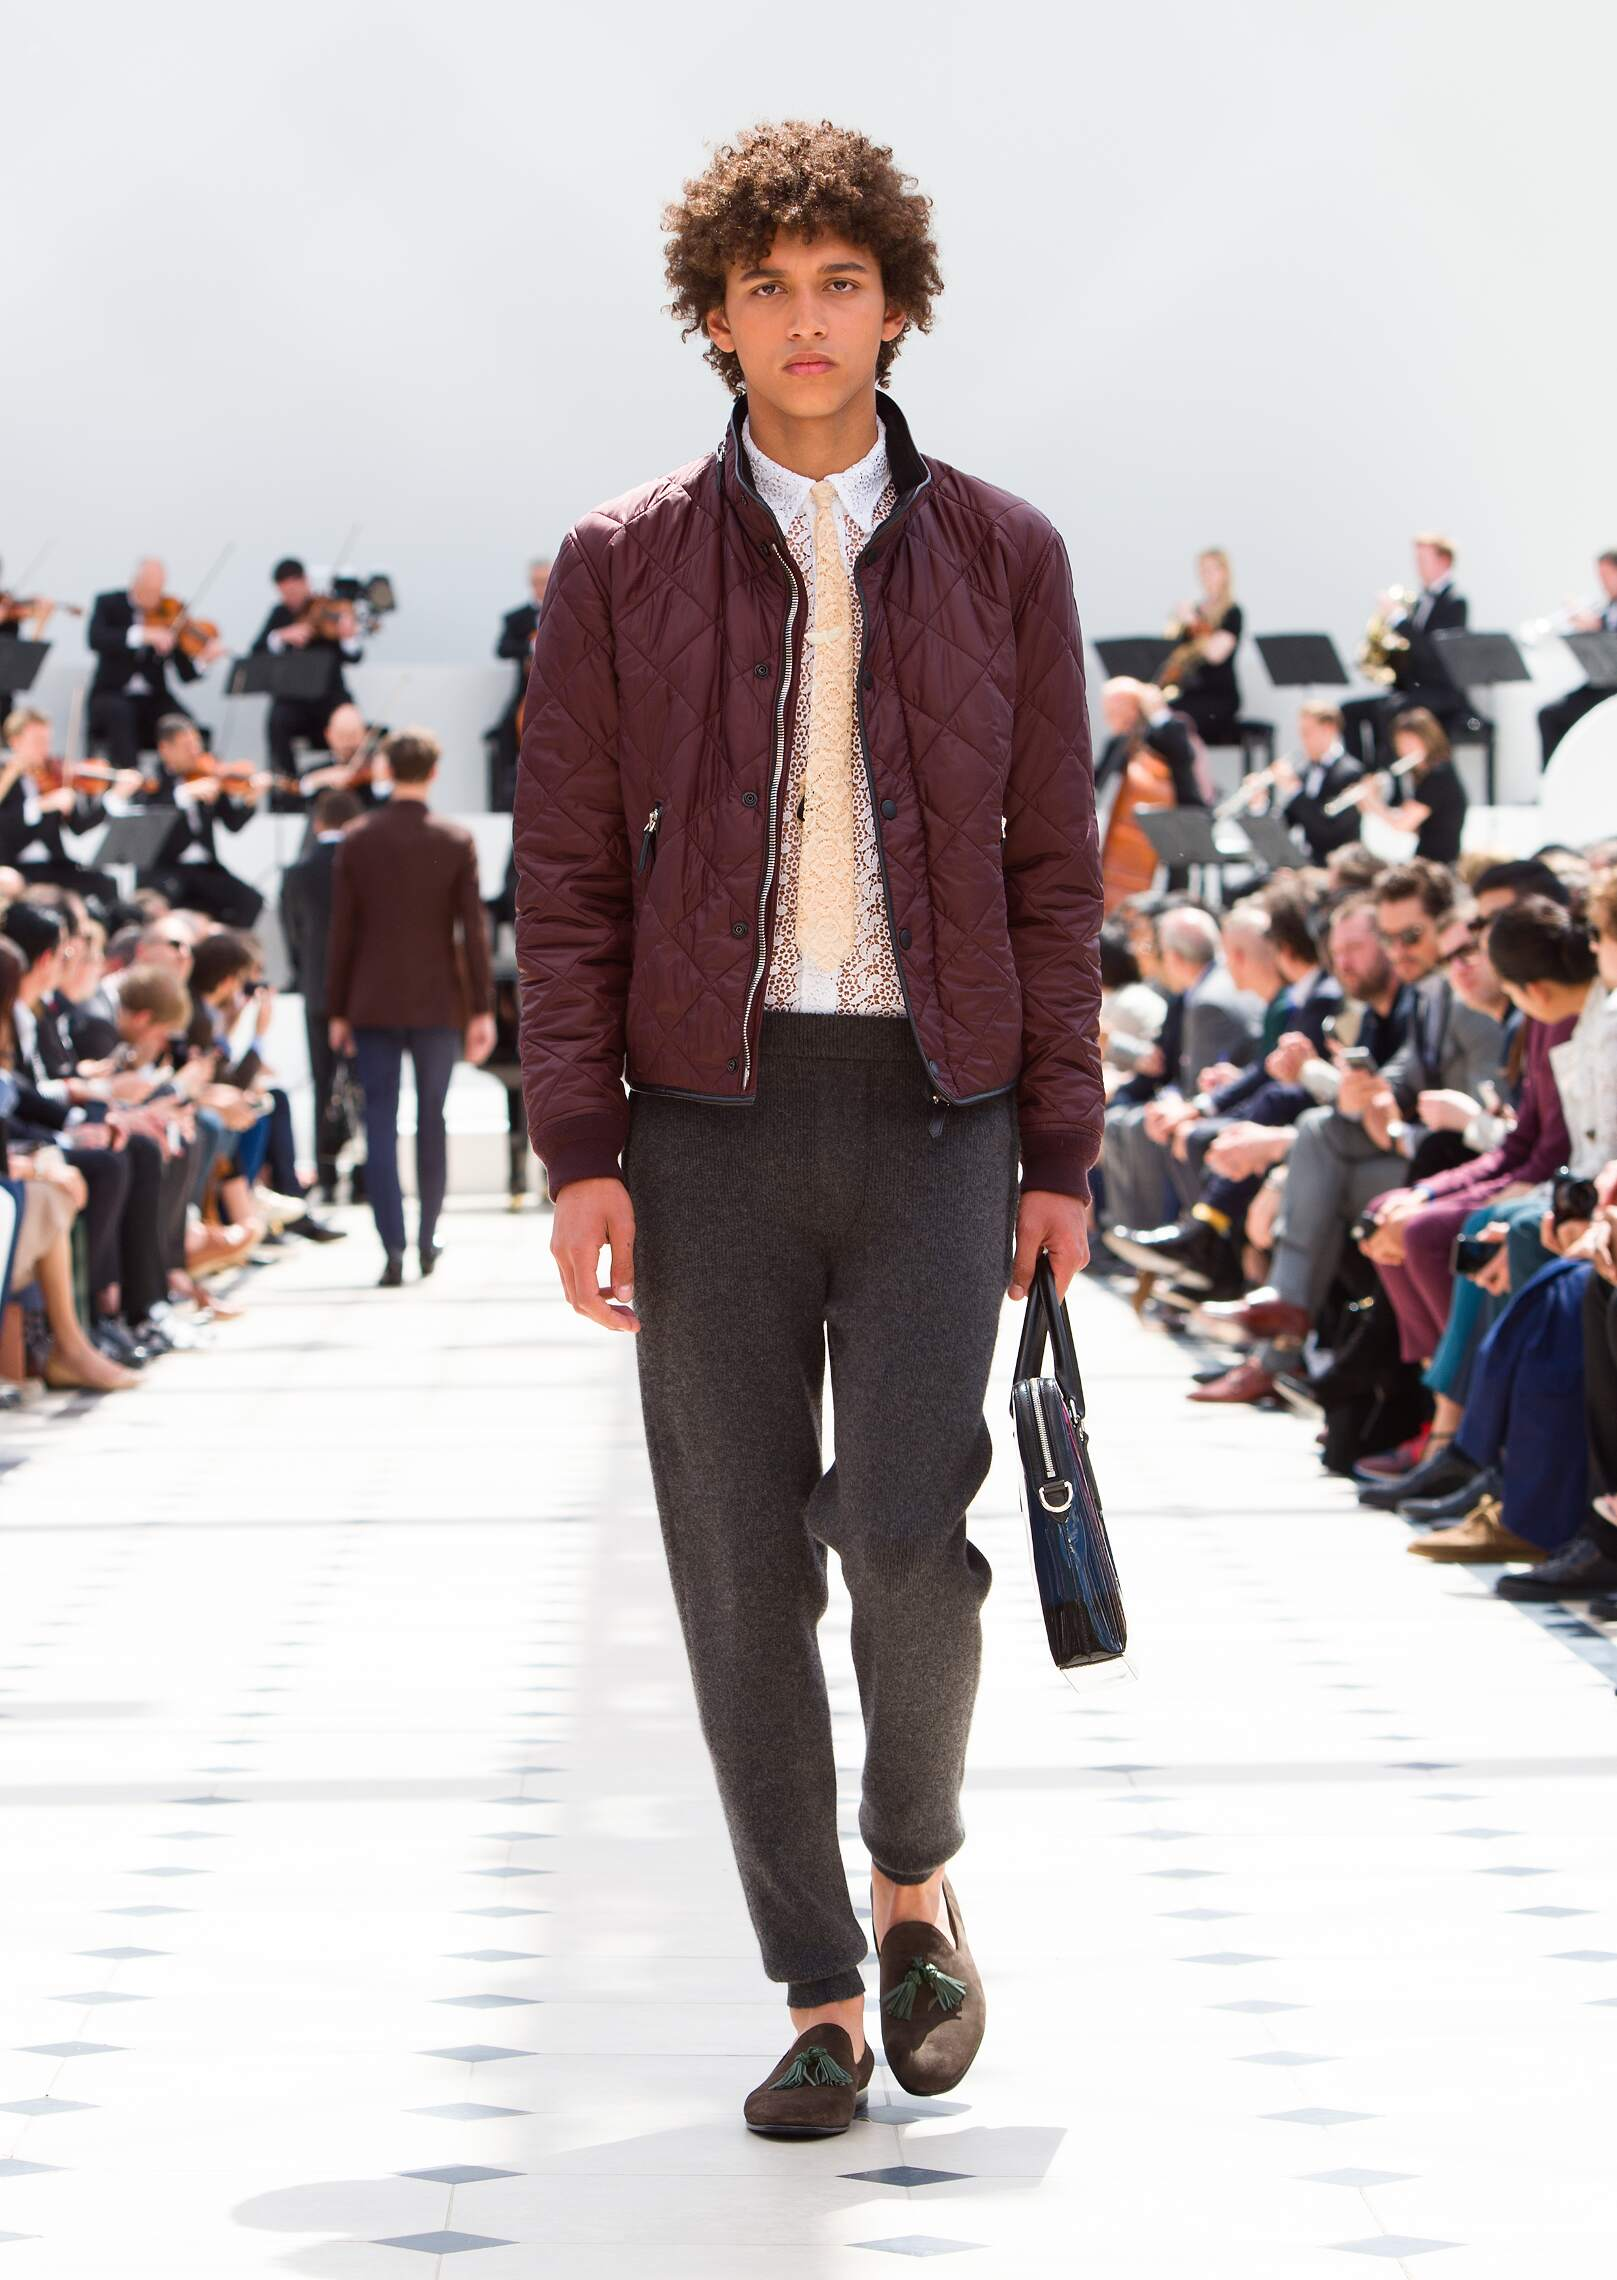 Fashion Menswear Burberry Prorsum Collection Catwalk